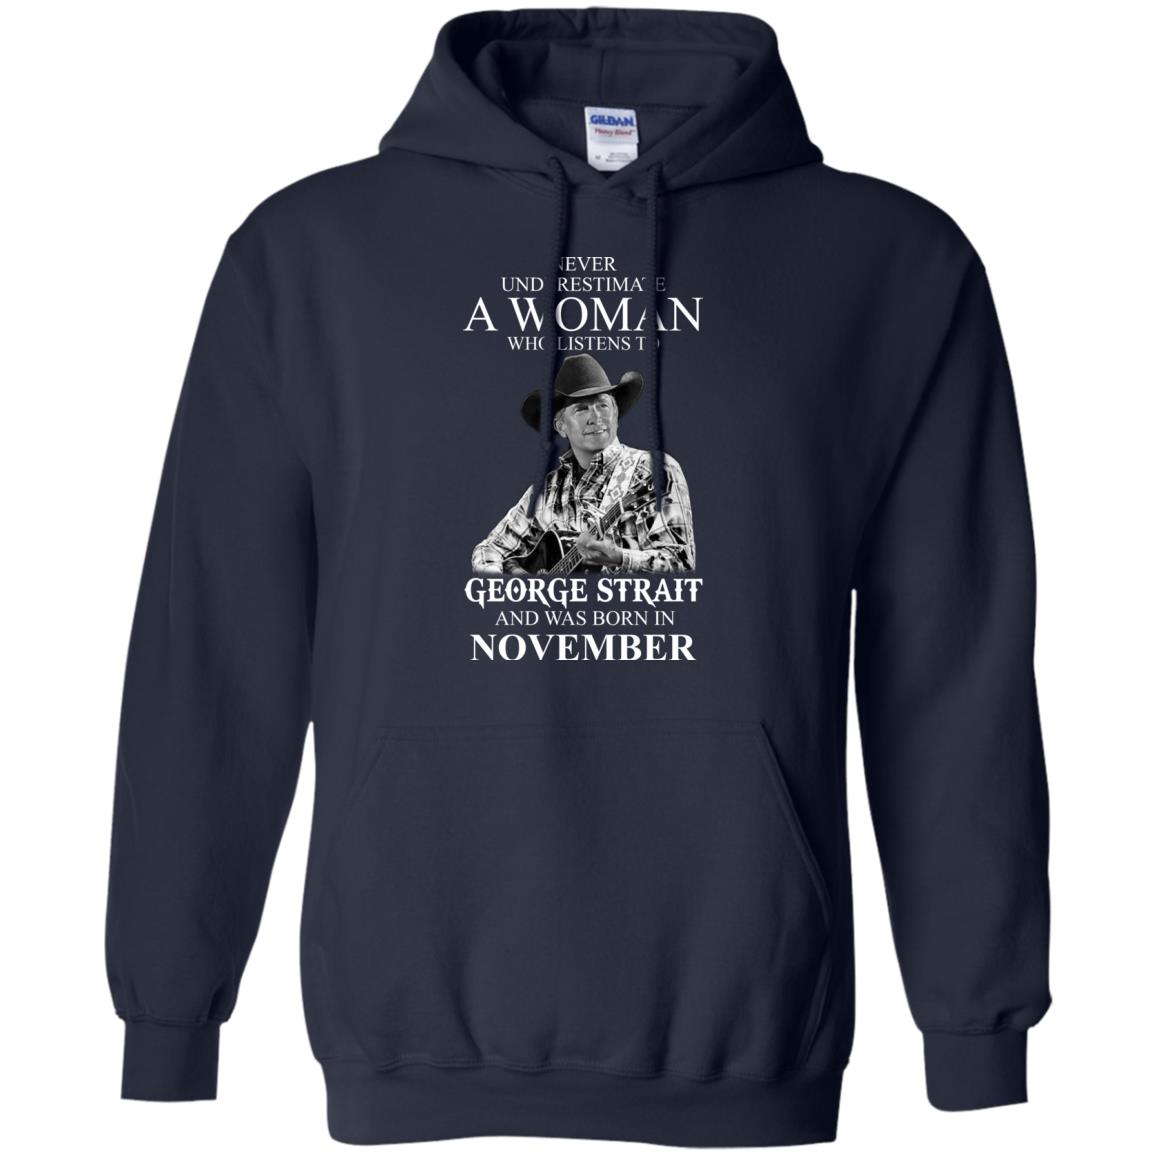 image 355 - Never Underestimate A Woman Who Listens To George Strait And Was Born In November shirt